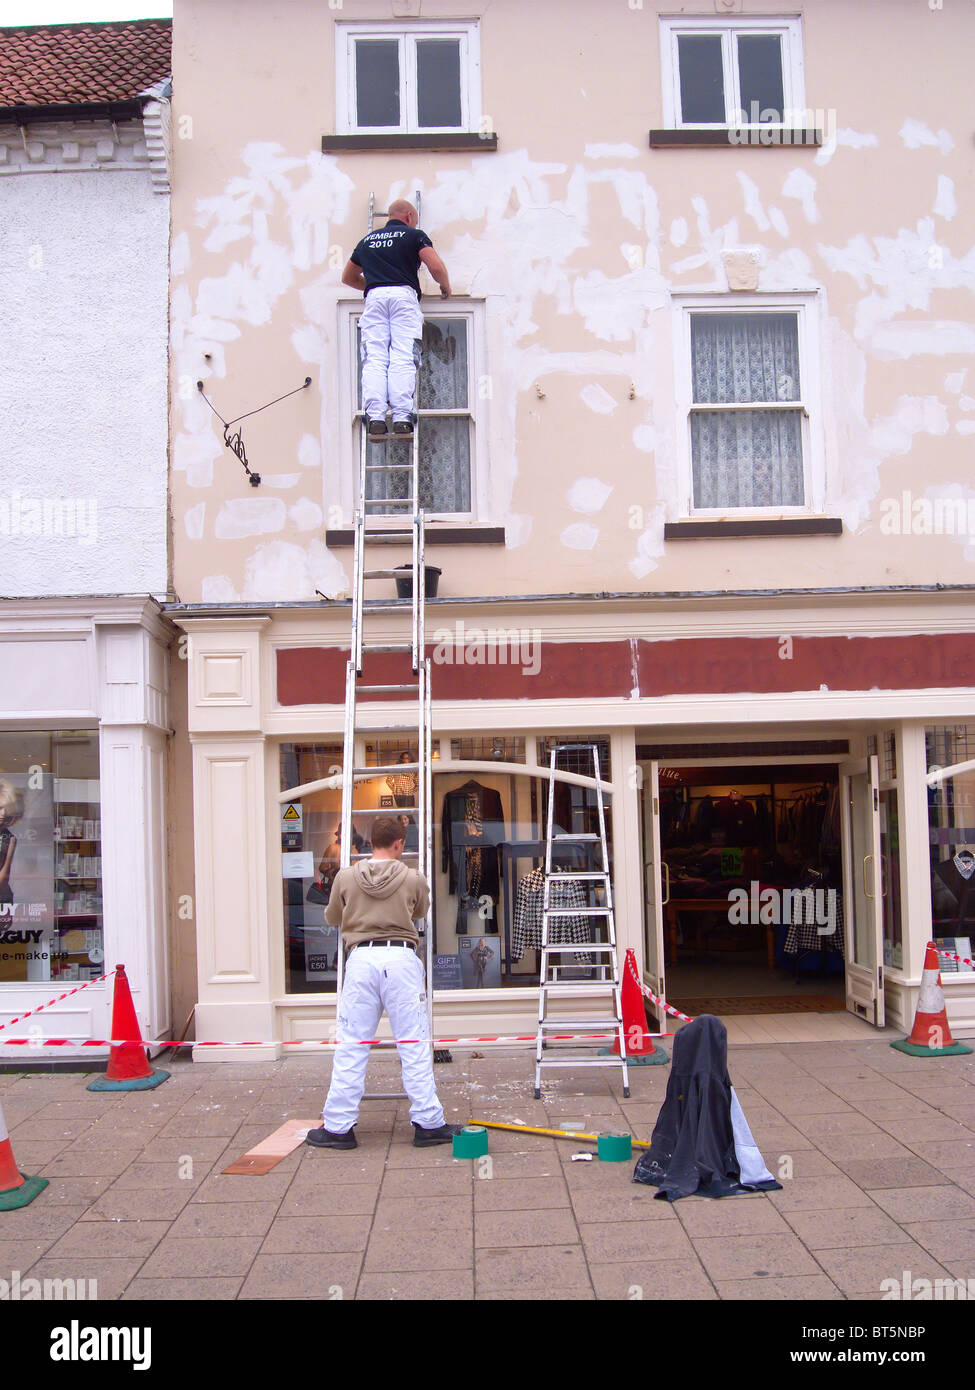 Decorators painting the exterior of a shop in Northallerton North Yorkshire - Stock Image